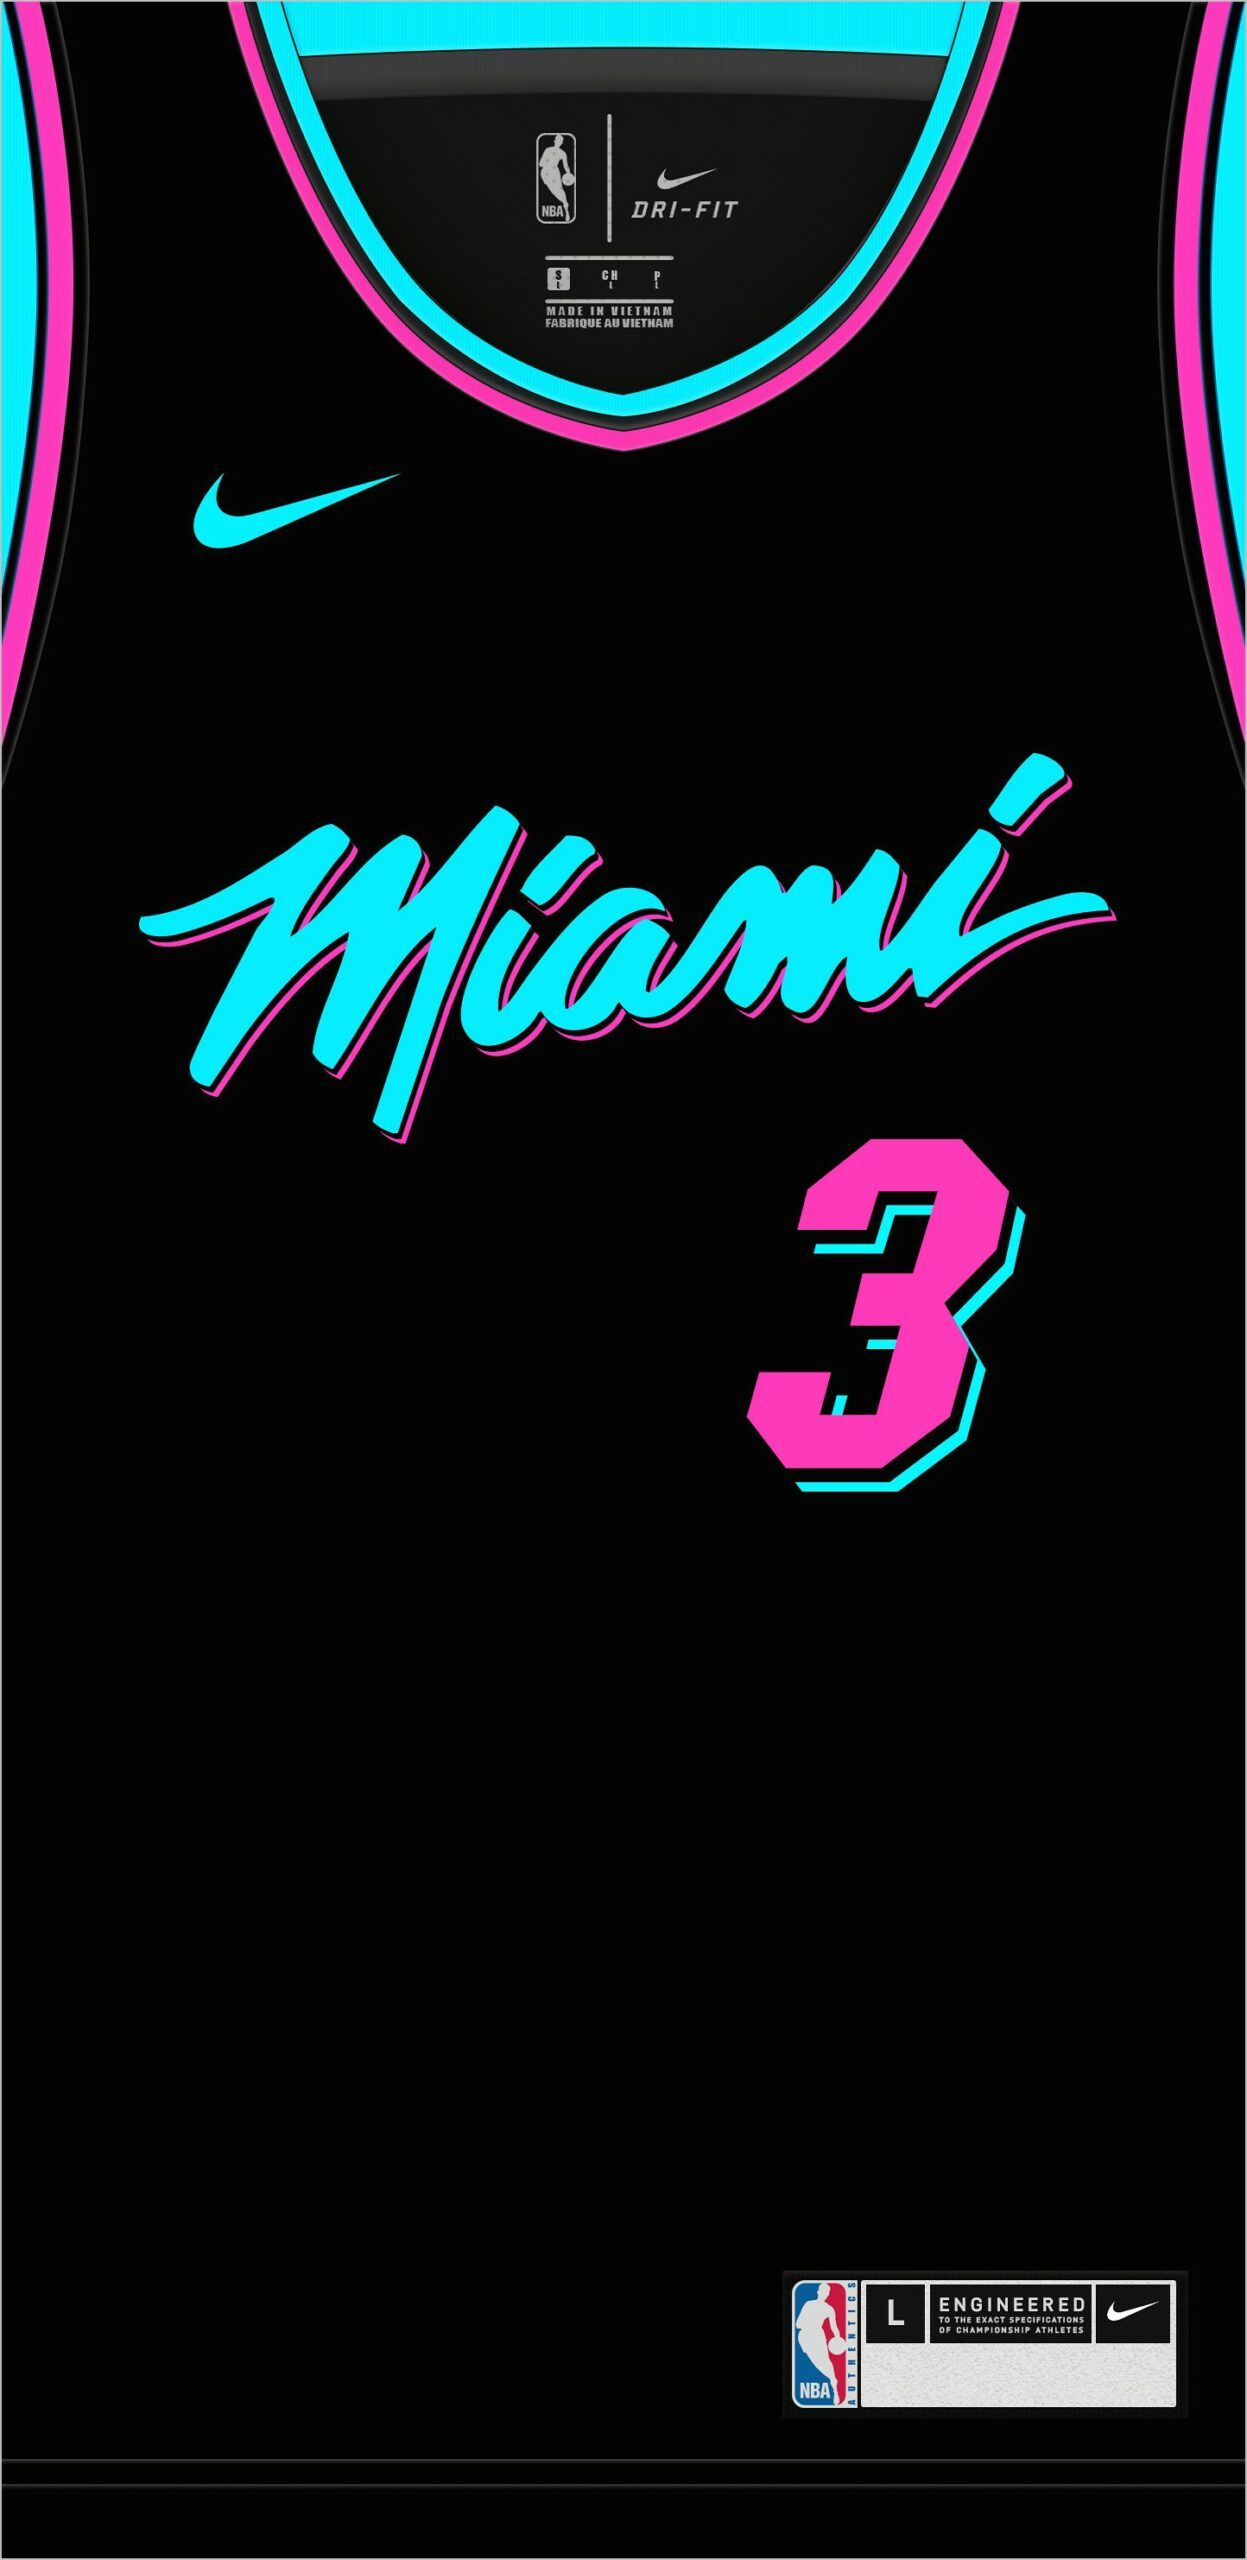 D Wade Miami Heat Wallpaper Miami Heat Dwyane Wade Wallpaper Miami Heat Basketball